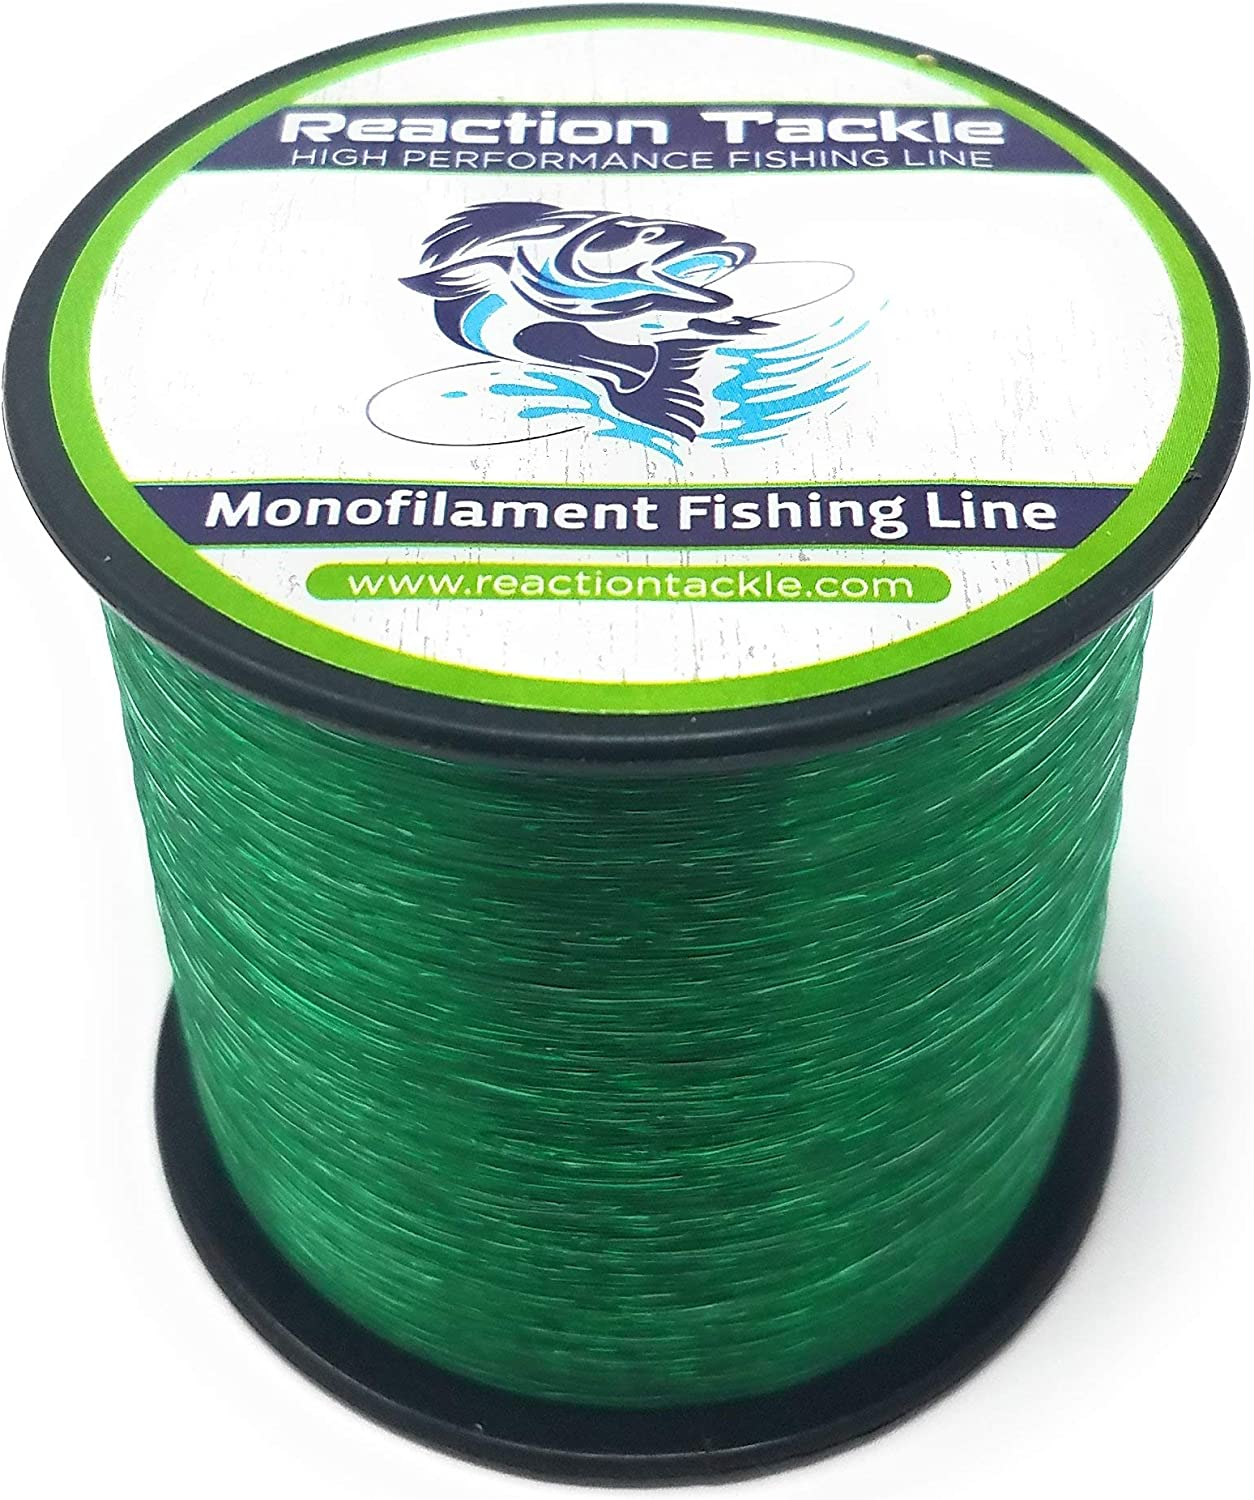 Reaction Tackle Monofilament Fishing Line